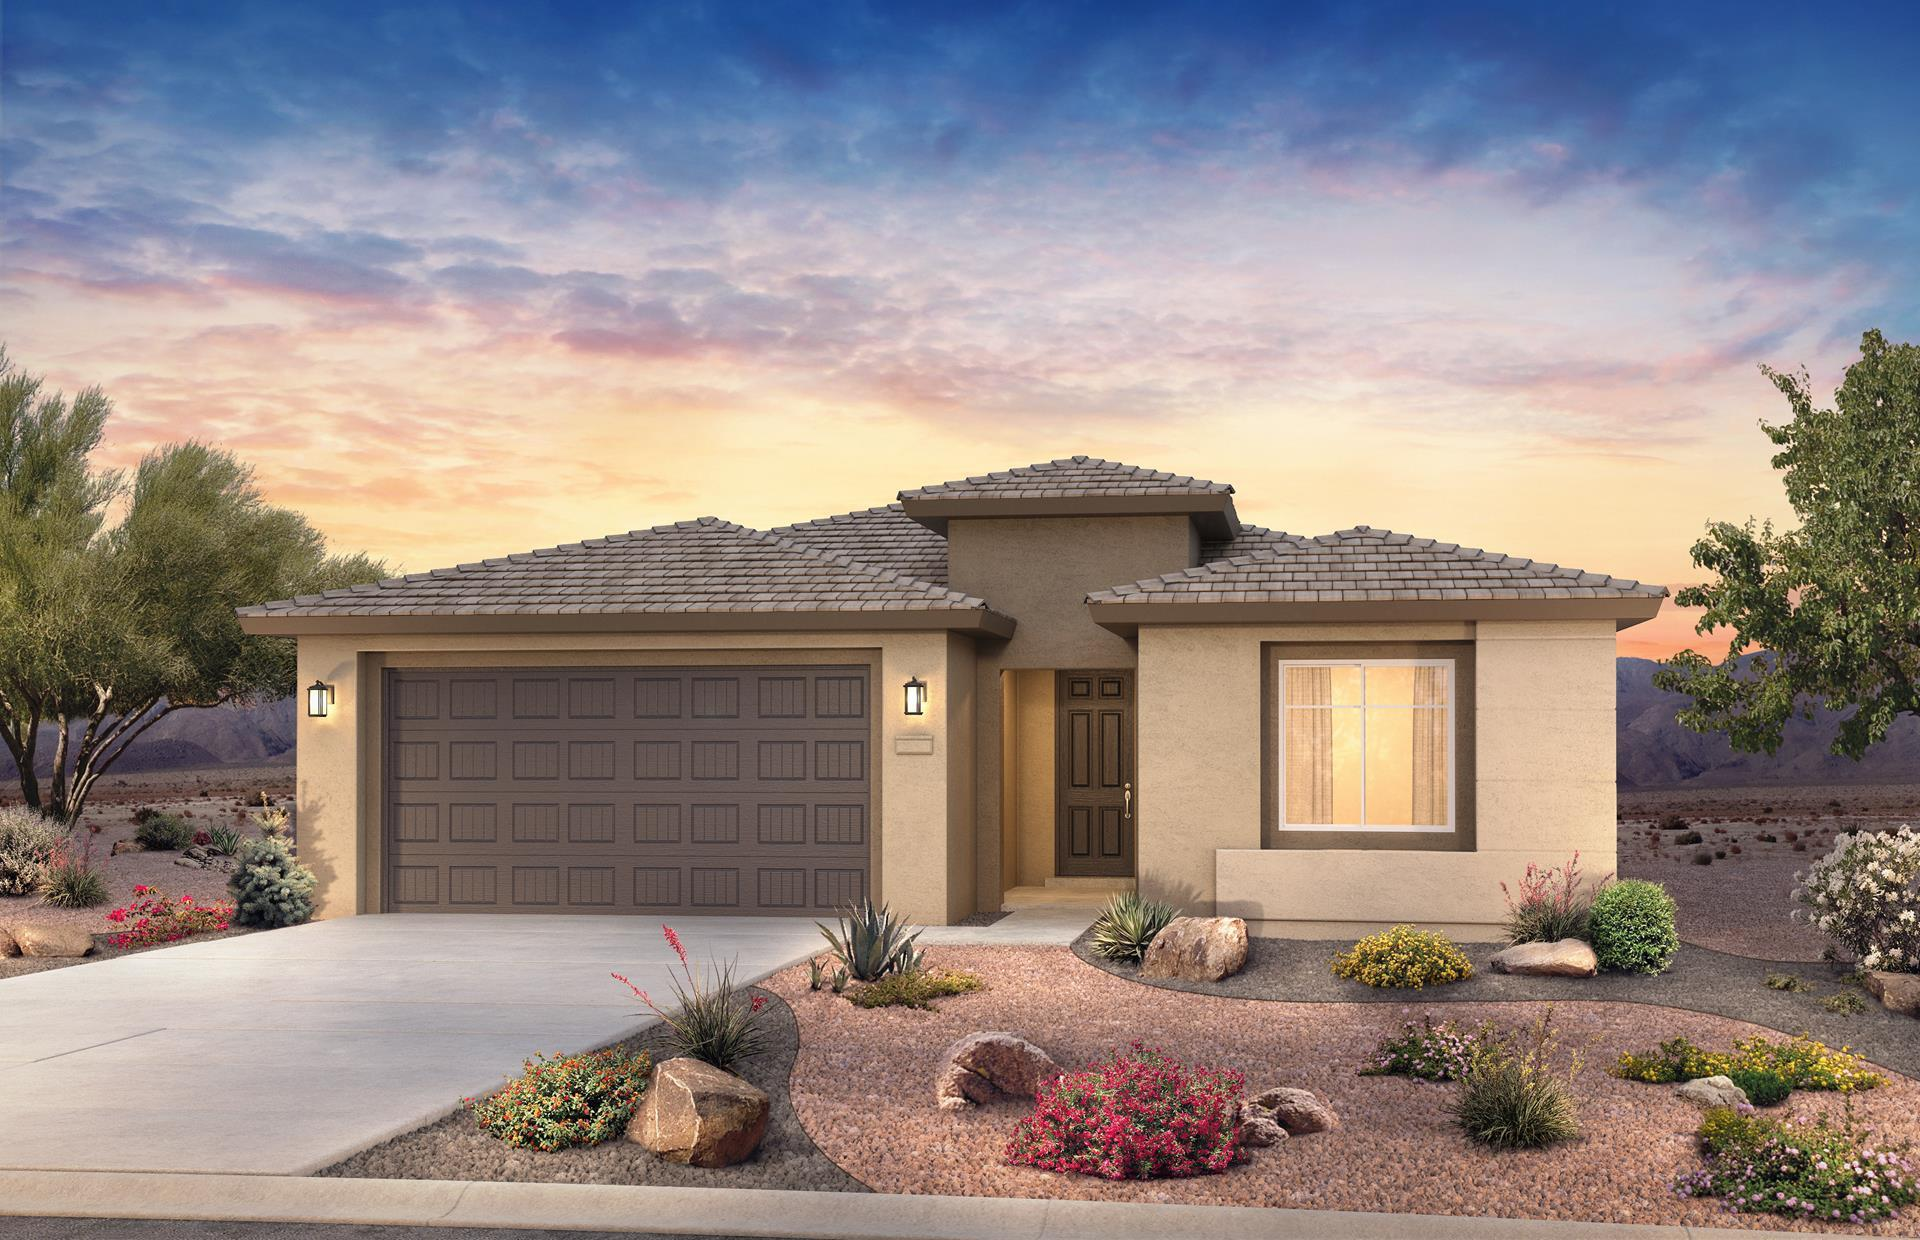 Available Nov/Dec 2021! Brand new, never lived-in Pulte home in a perfect location across from the community park. Enjoy brand new appliances, new carpet, new A/C, new tankless water heater, and so much more! This energy-efficient home boasts open concept living at its finest. Enjoy your open kitchen with built in stainless-steel appliances, granite countertops throughout, an eat-in island and an open gathering room with a fireplace ideal for entertaining. Enjoy ample storage in the oversized 2.5 car garage with an upgraded 8' door. New home warranty included!